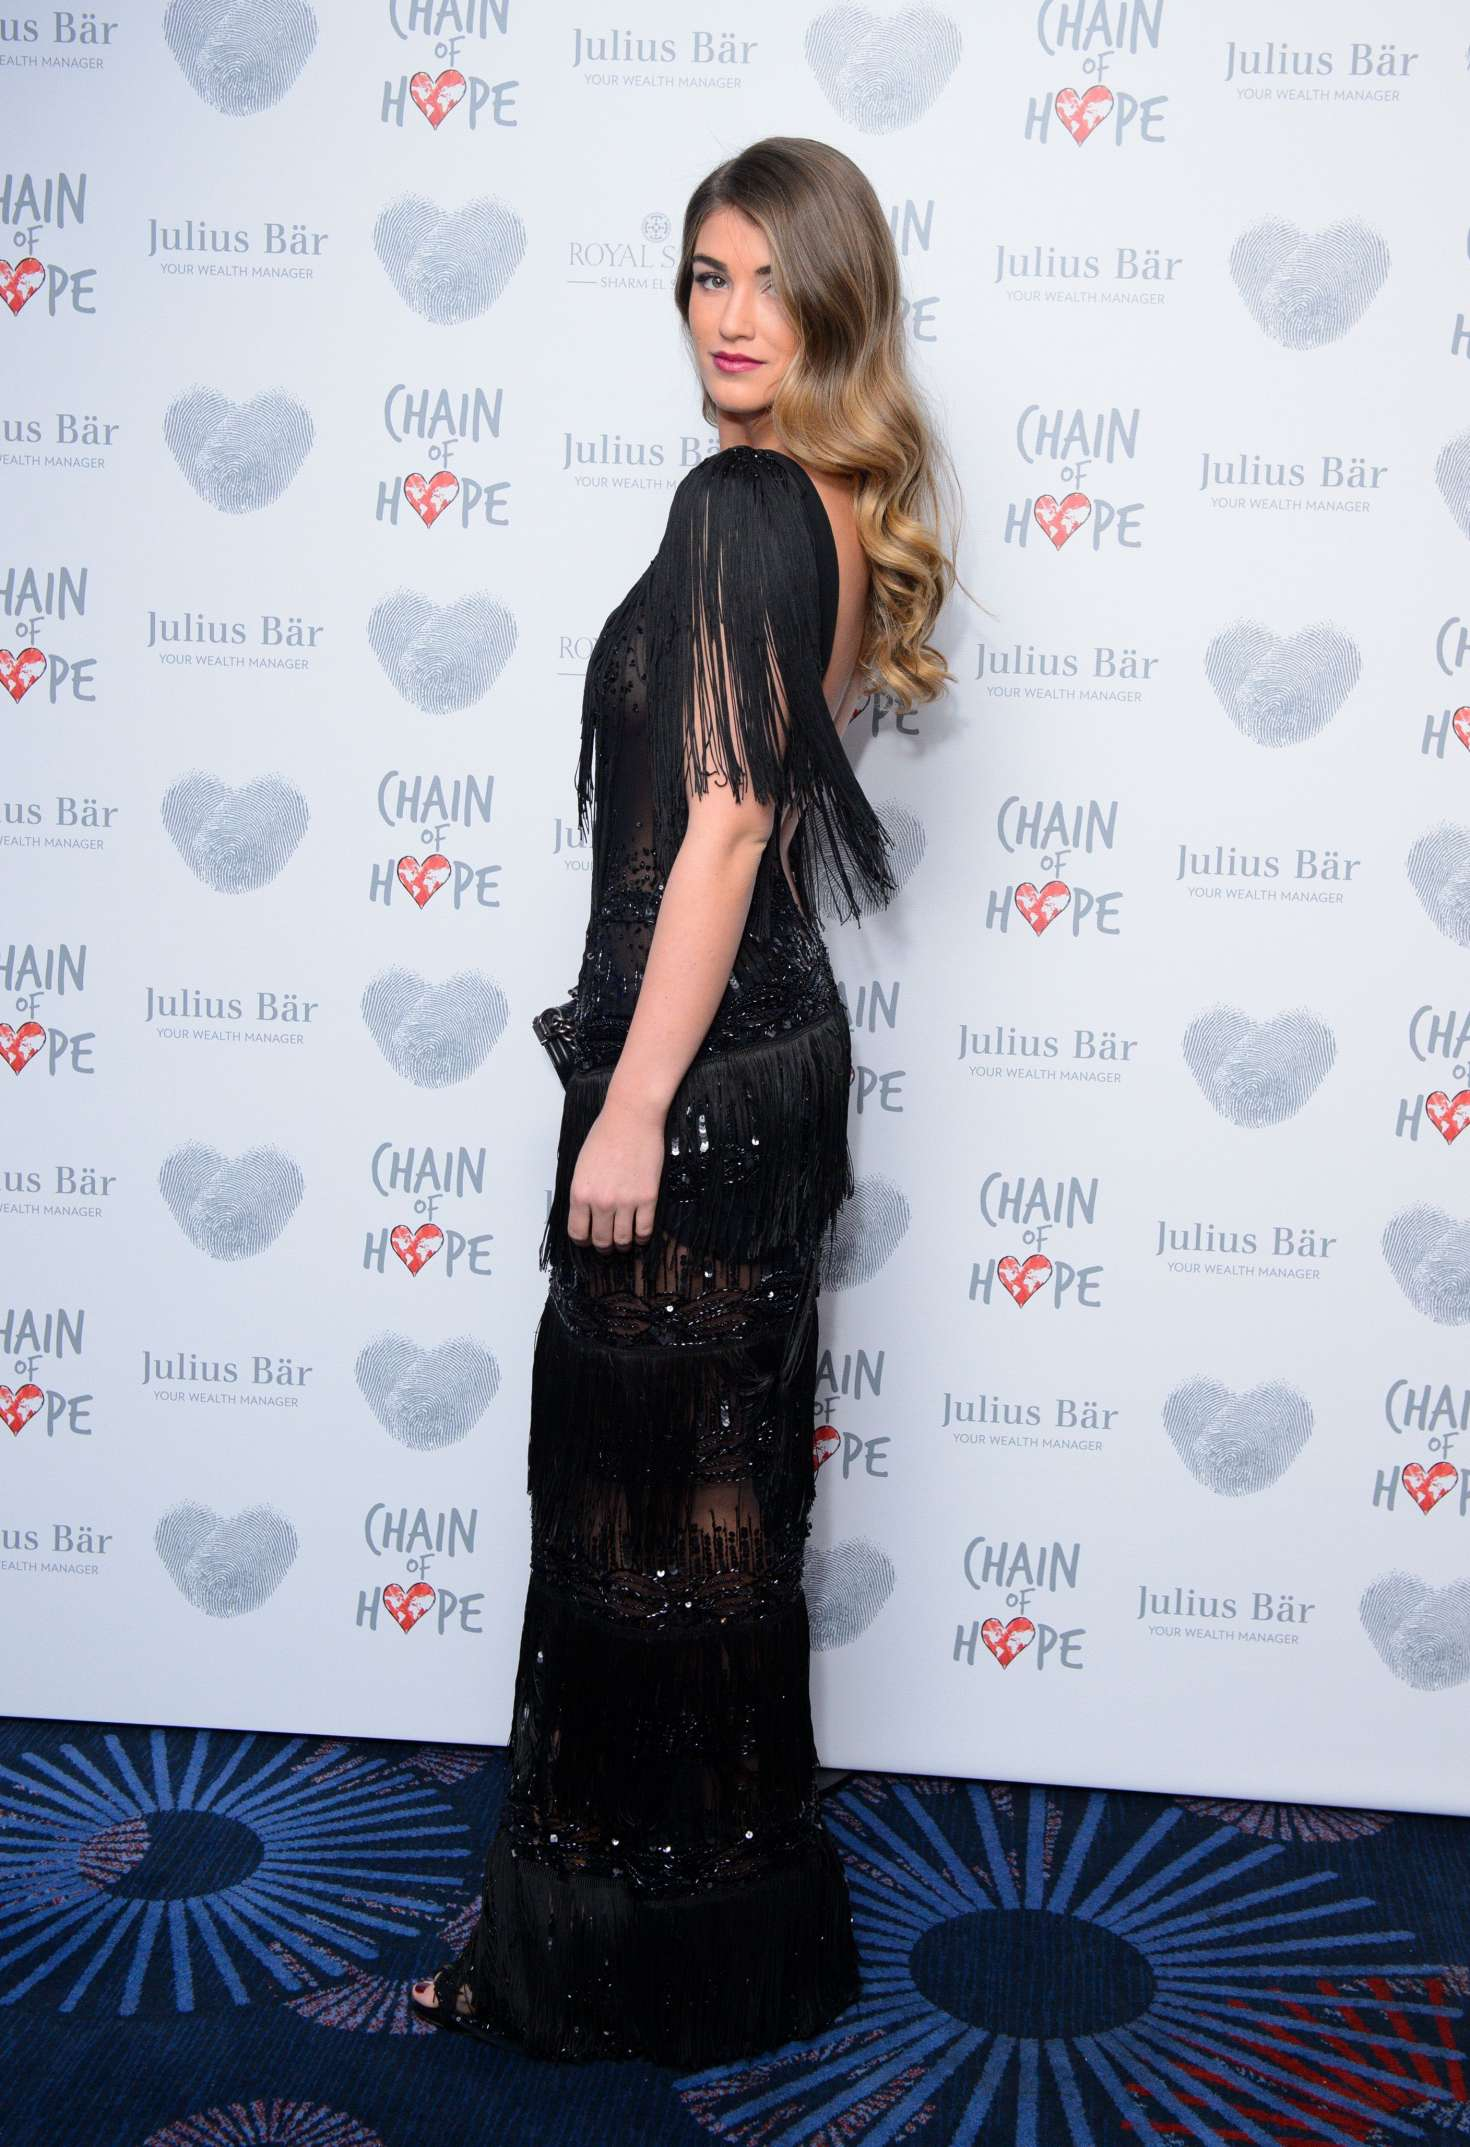 Amy Willerton 2016 : Amy Willerton: Chain Of Hope Annual Gala Ball 2016 -24